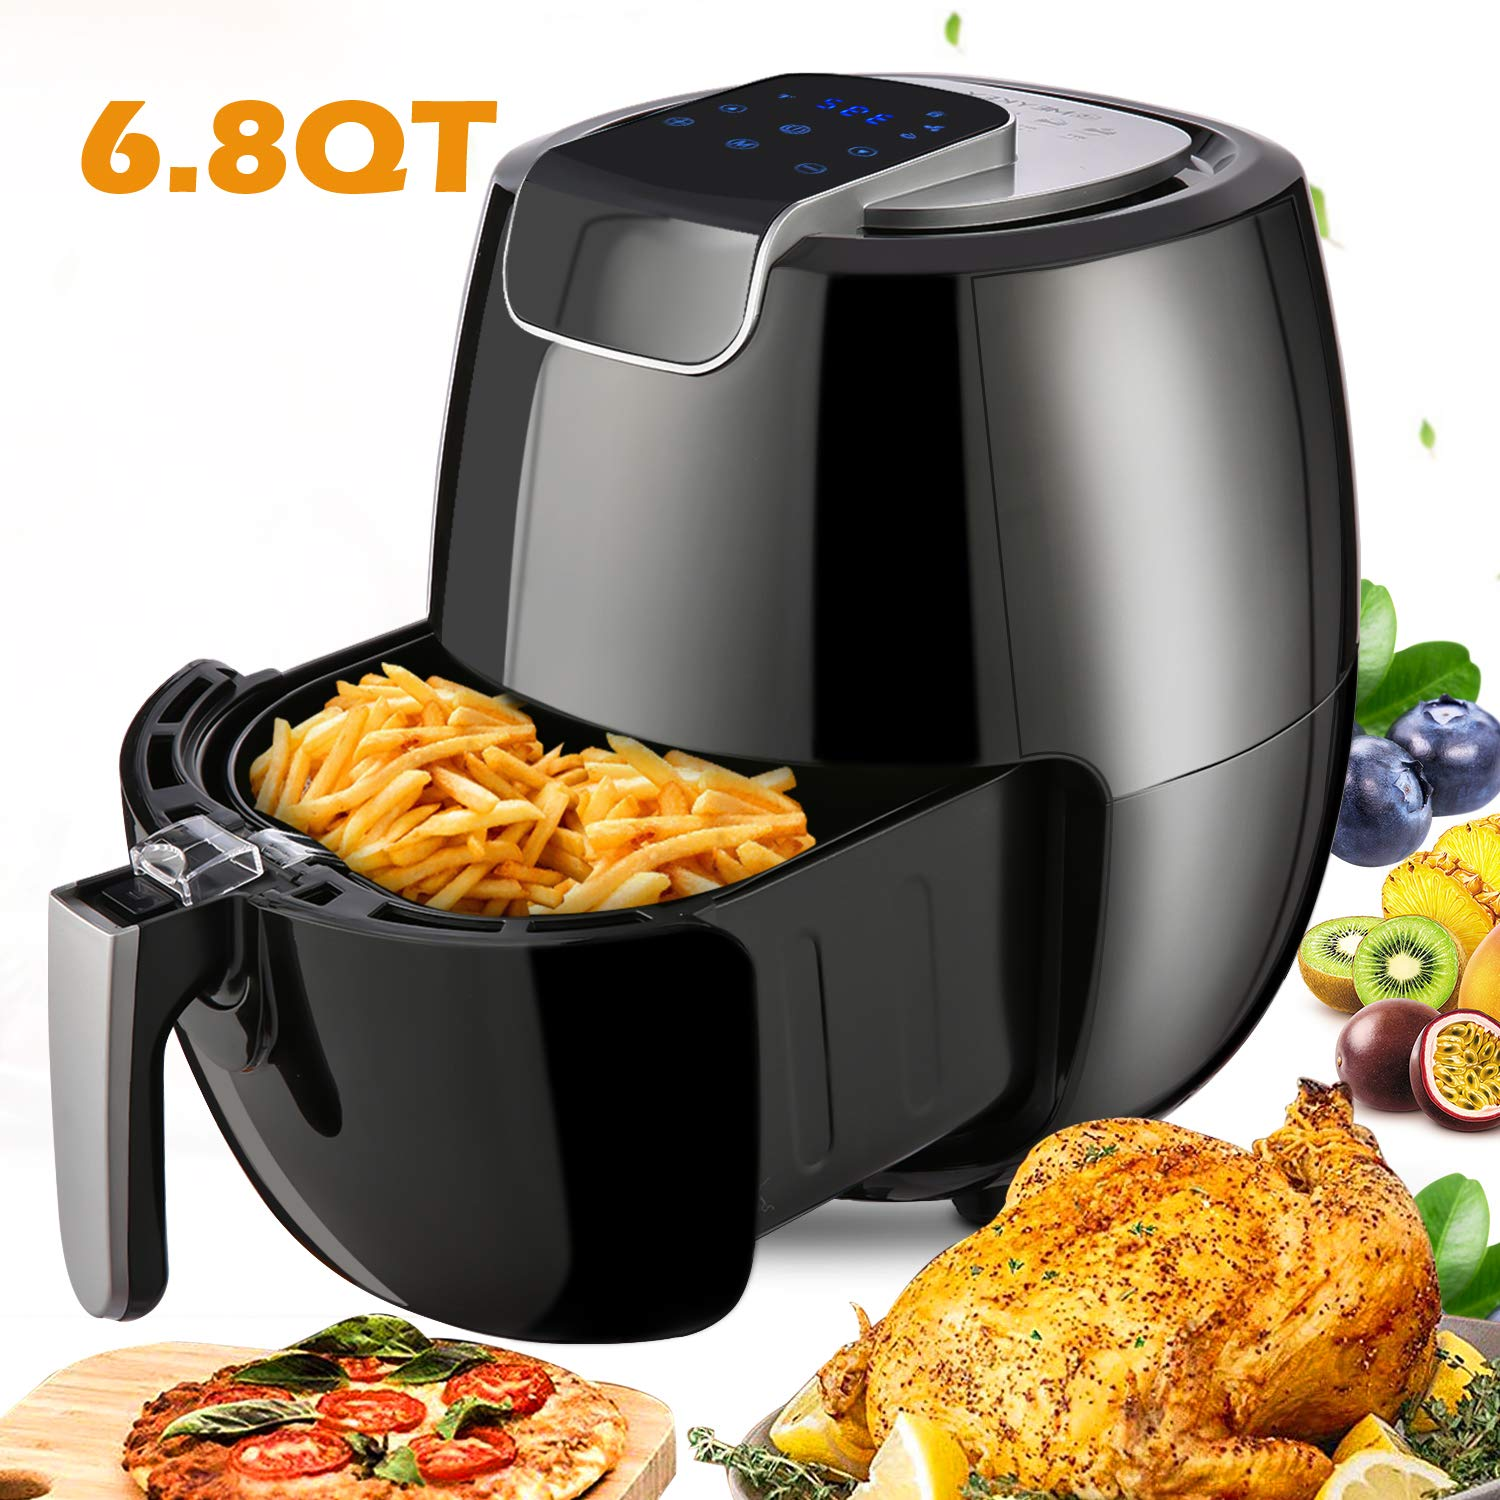 Air Fryer XL 6.8QT, 1800W Electric Hot Air Fryers Oven Oilless Cooker, LCD Digital Touchscreen, 8 Cooking Presets, Preheat & Nonstick Basket for Fast Healthier Fried Food by Hauture (Image #1)